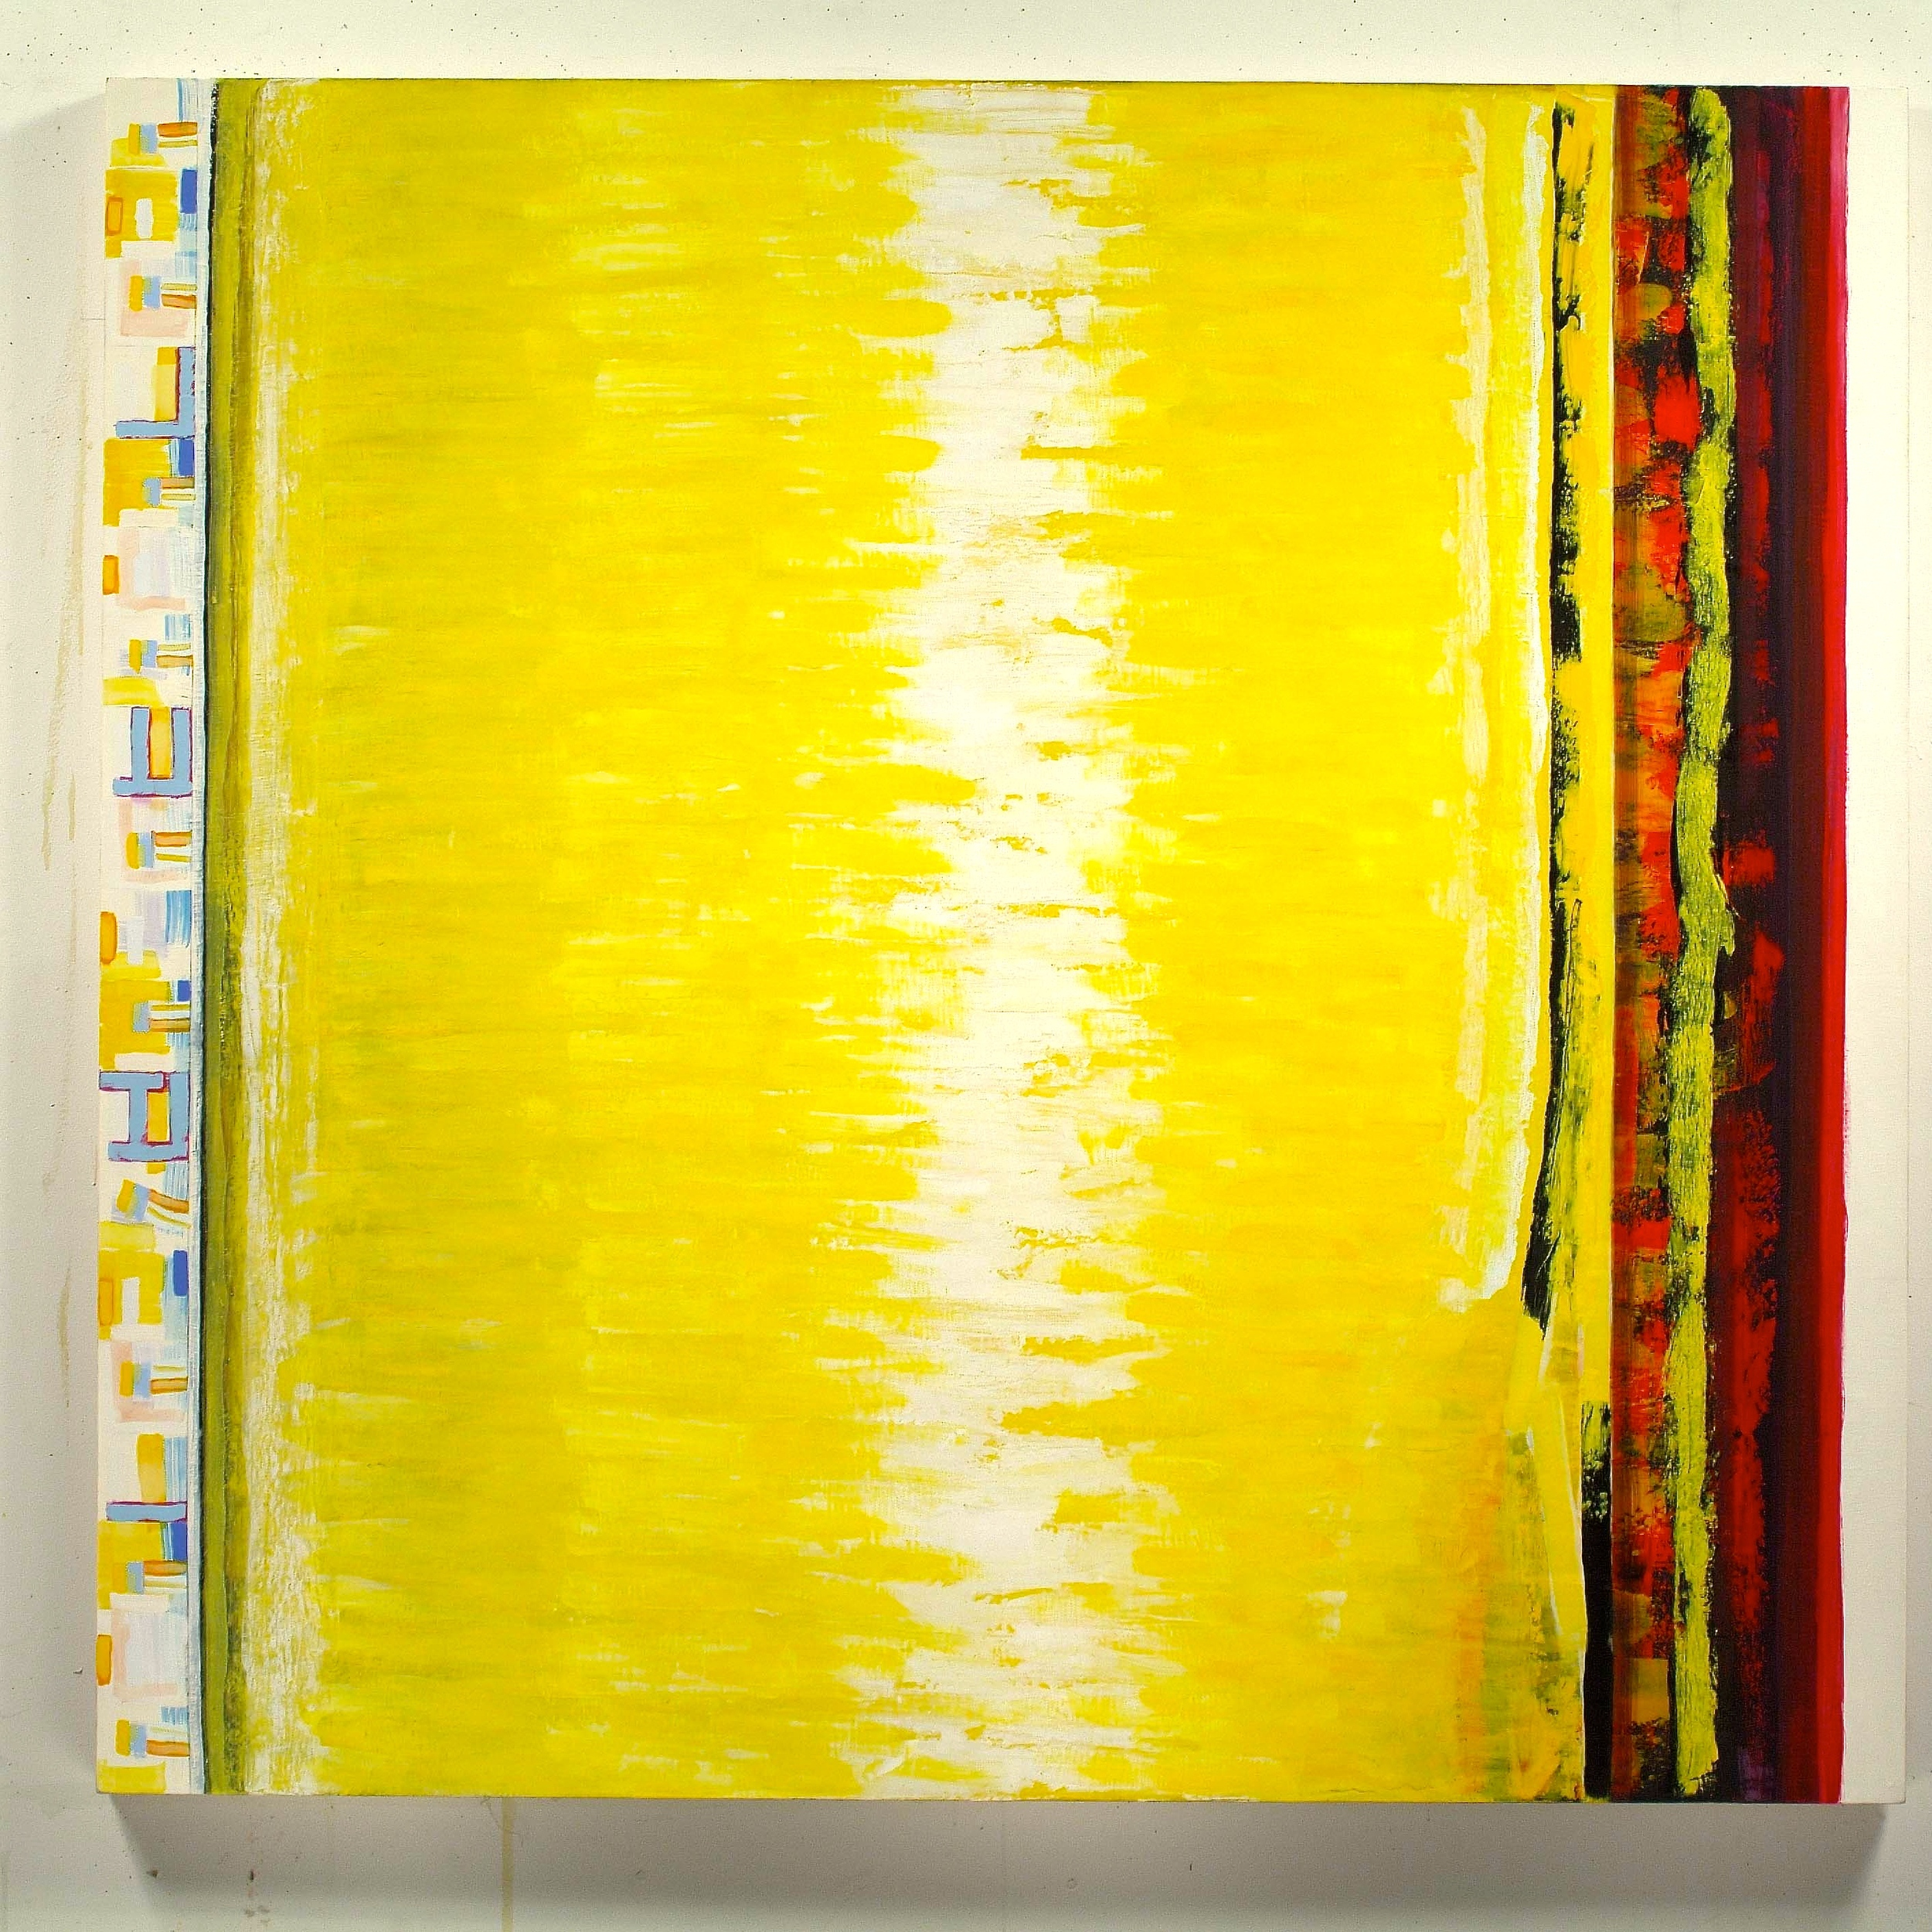 """Suspension in More than One Direction, 2001, oil on linen, 66 1/2""""x70""""x2"""""""